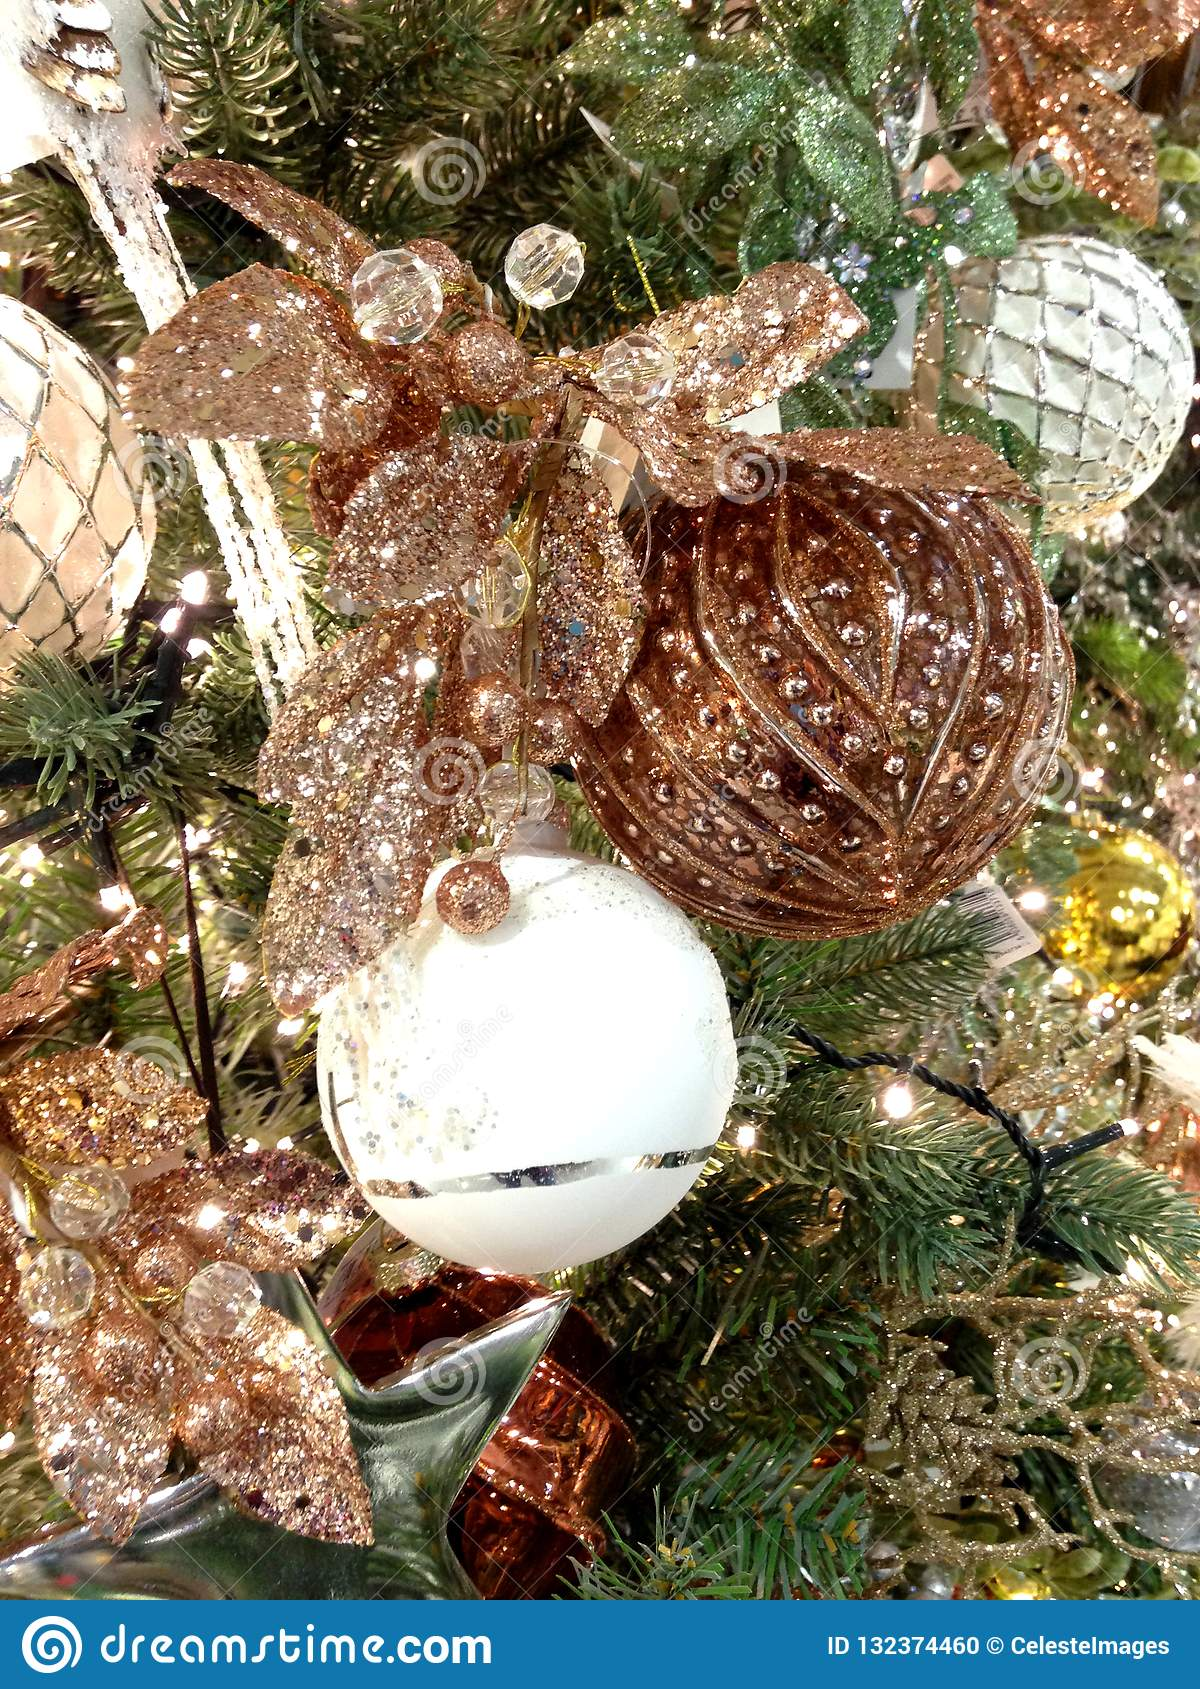 White And Golden Christmas Tree Decorations Stock Photo Image Of Decoraton Front 132374460